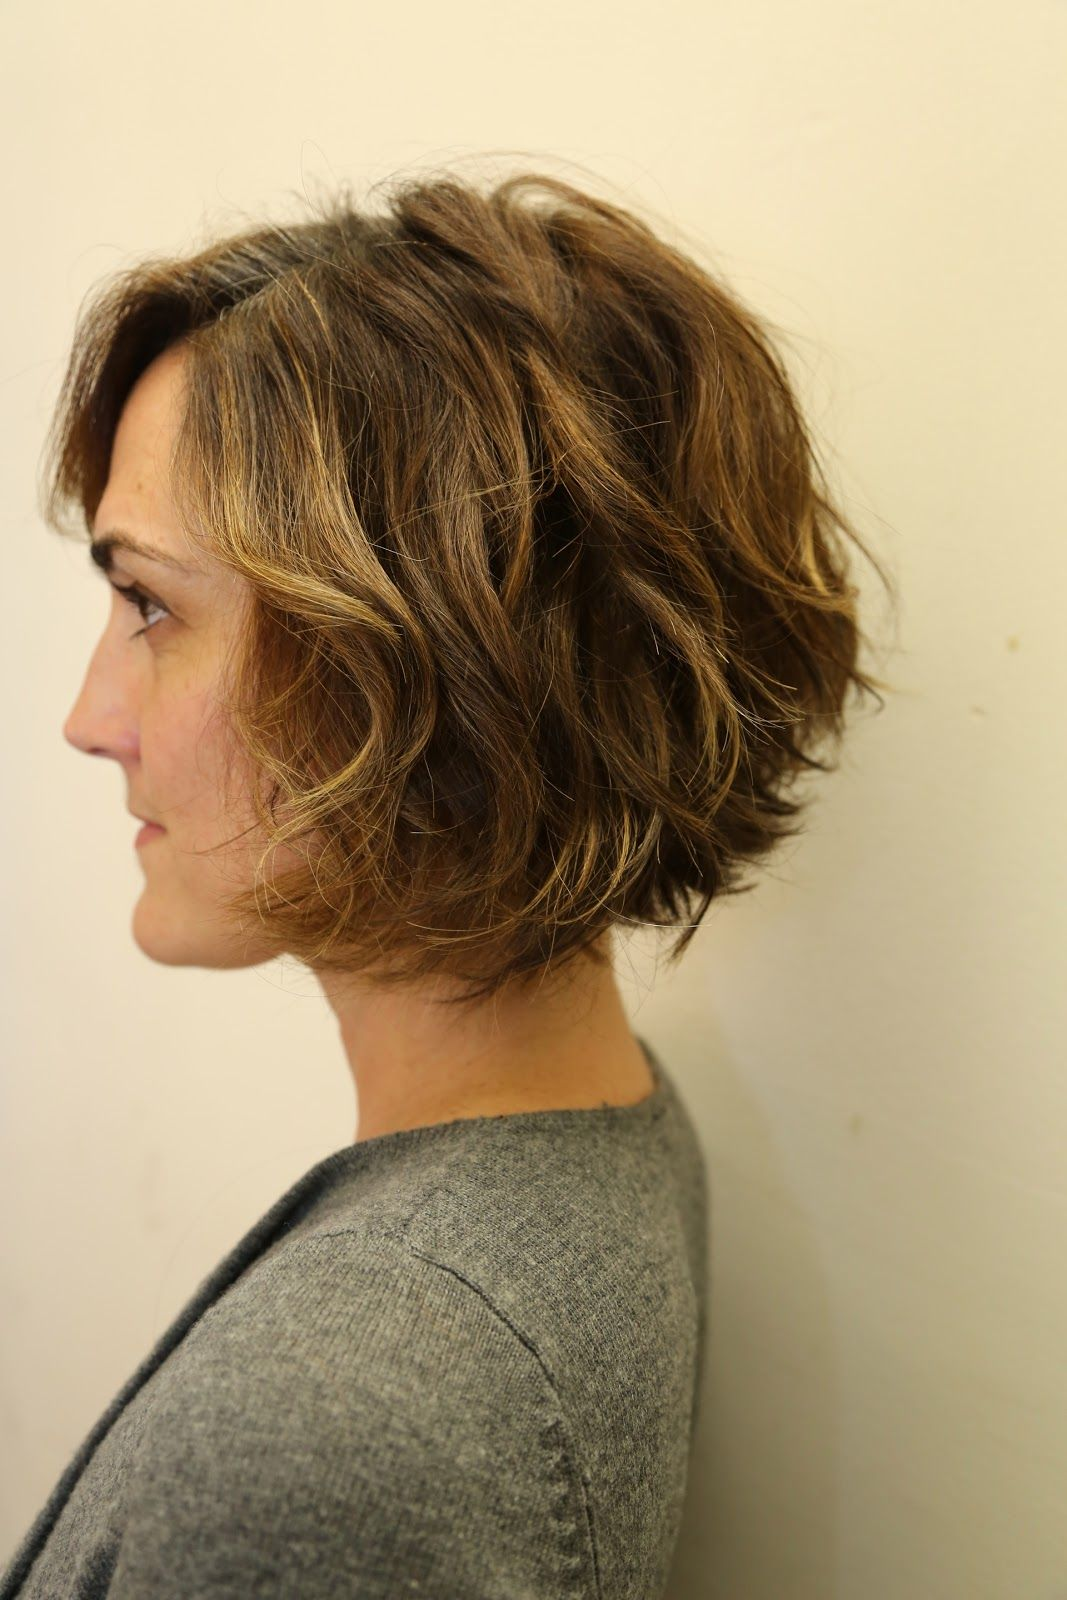 wavy bob - this is basically what my hair does. i love the cut